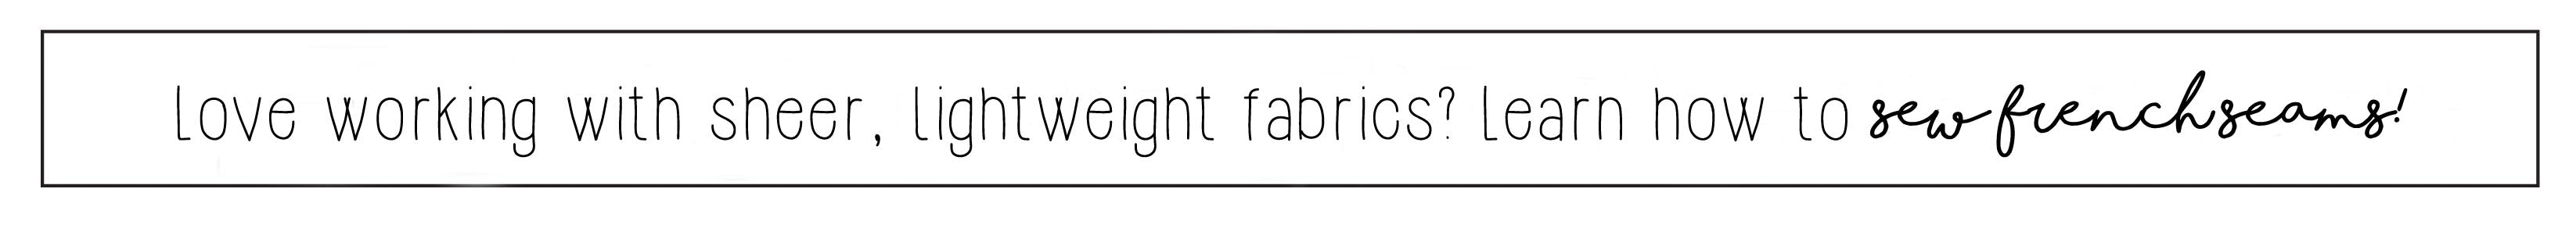 How To Sew A French Seam Sewing Tutorial